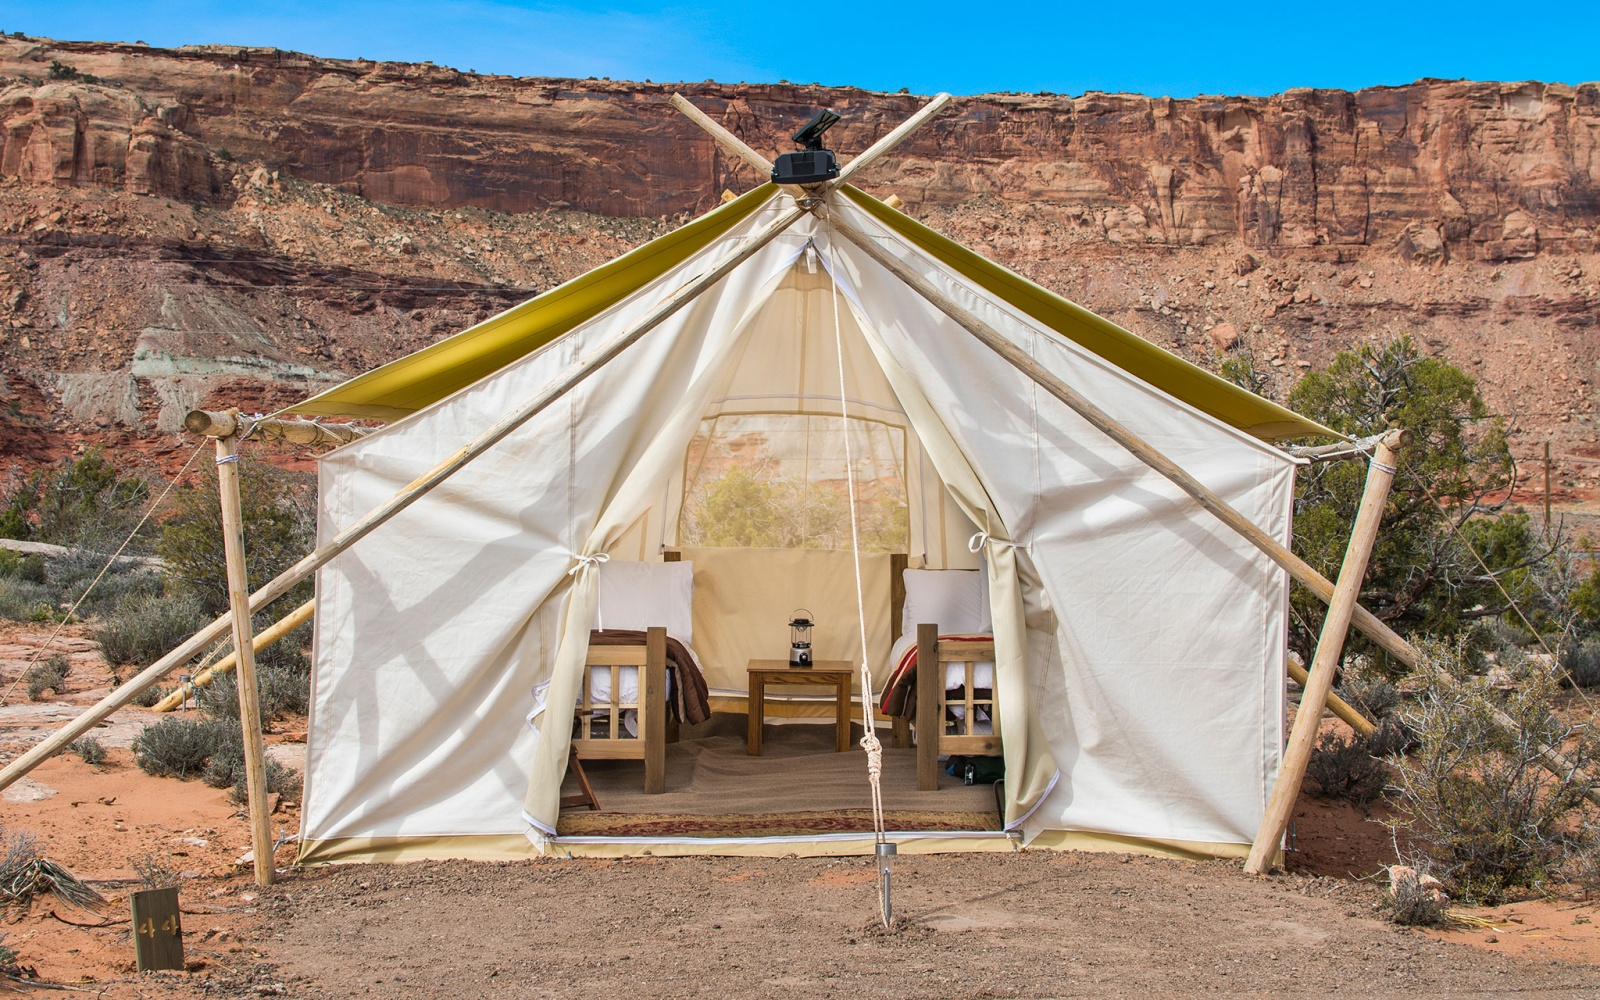 Camp Without Roughing It in Utah